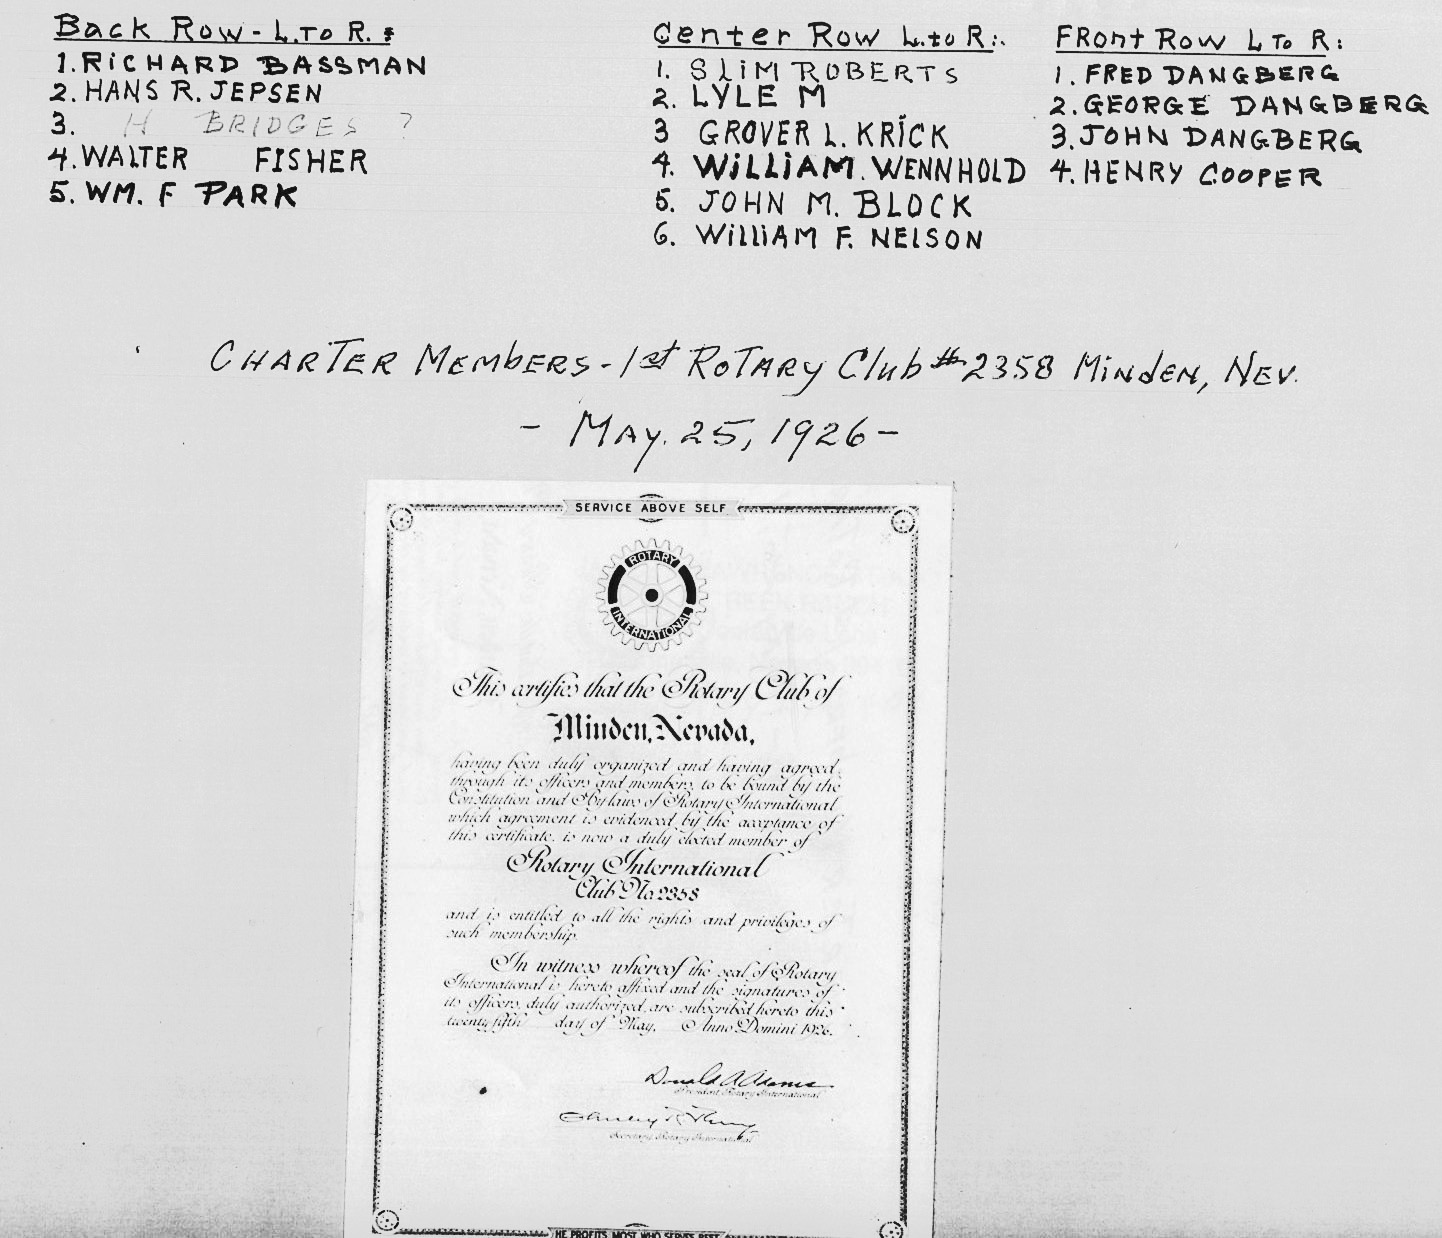 Copy of the original Rotary Club #2358 Charter pasted on the reverse side of the image